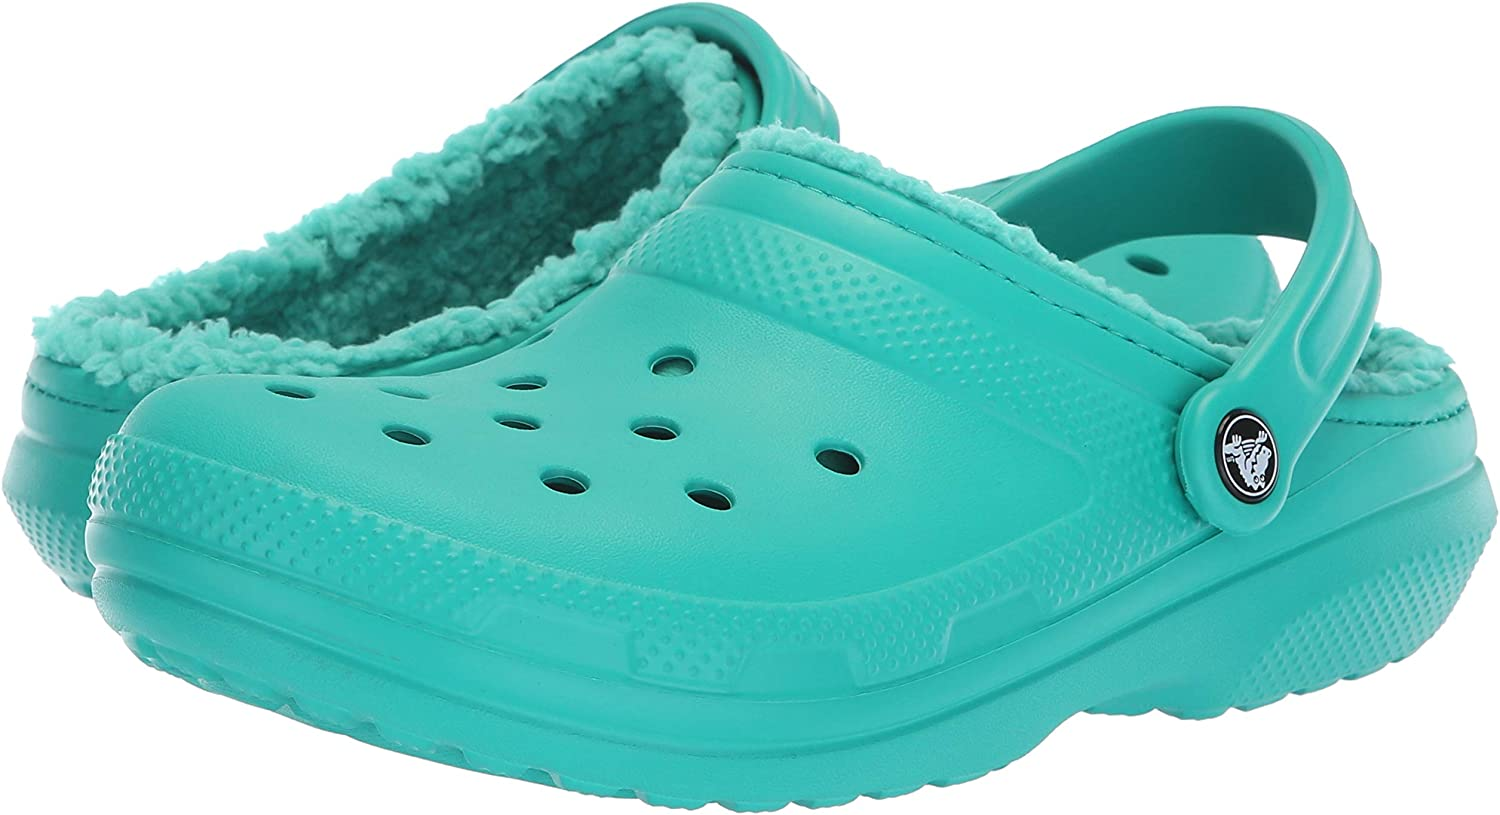 Warm and Fuzzy Slippers Mule Crocs Classic Lined Clog